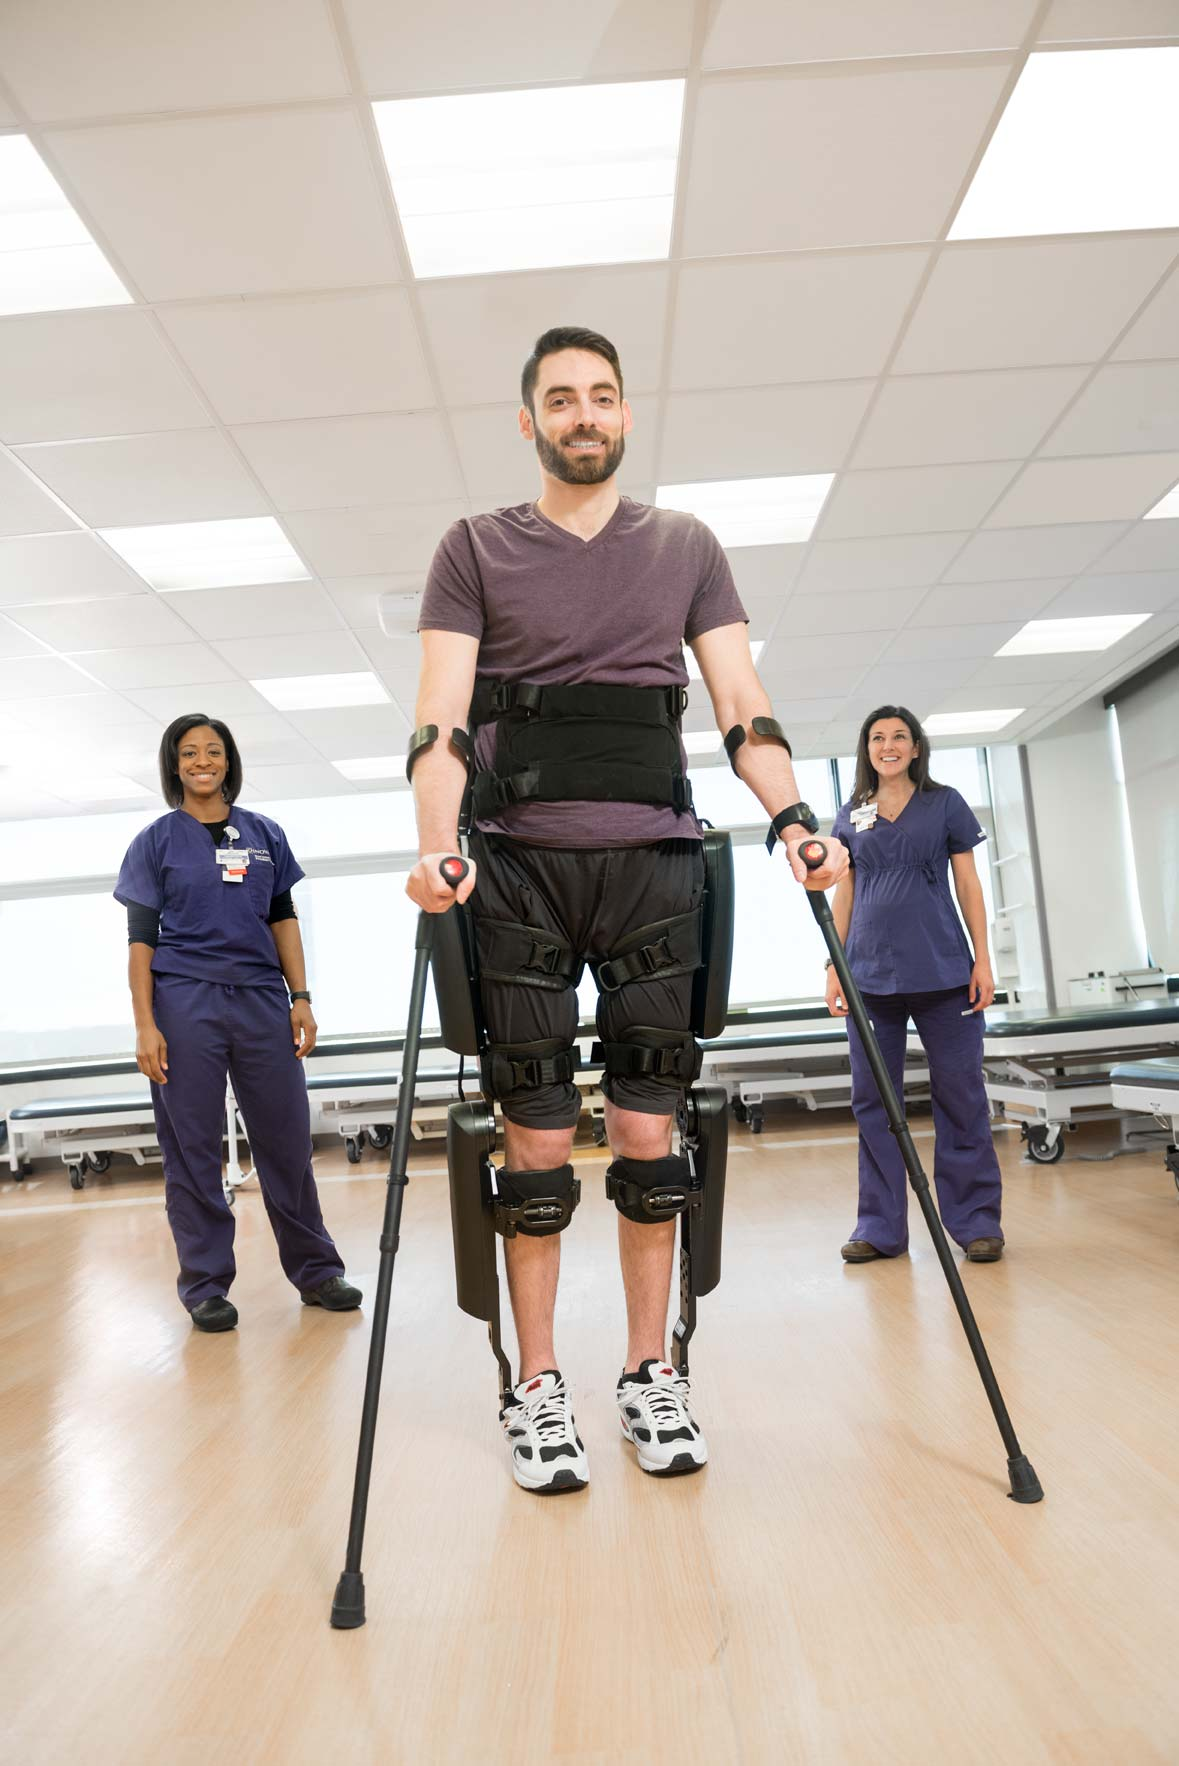 The ReWalk exoskeleton for INOVA